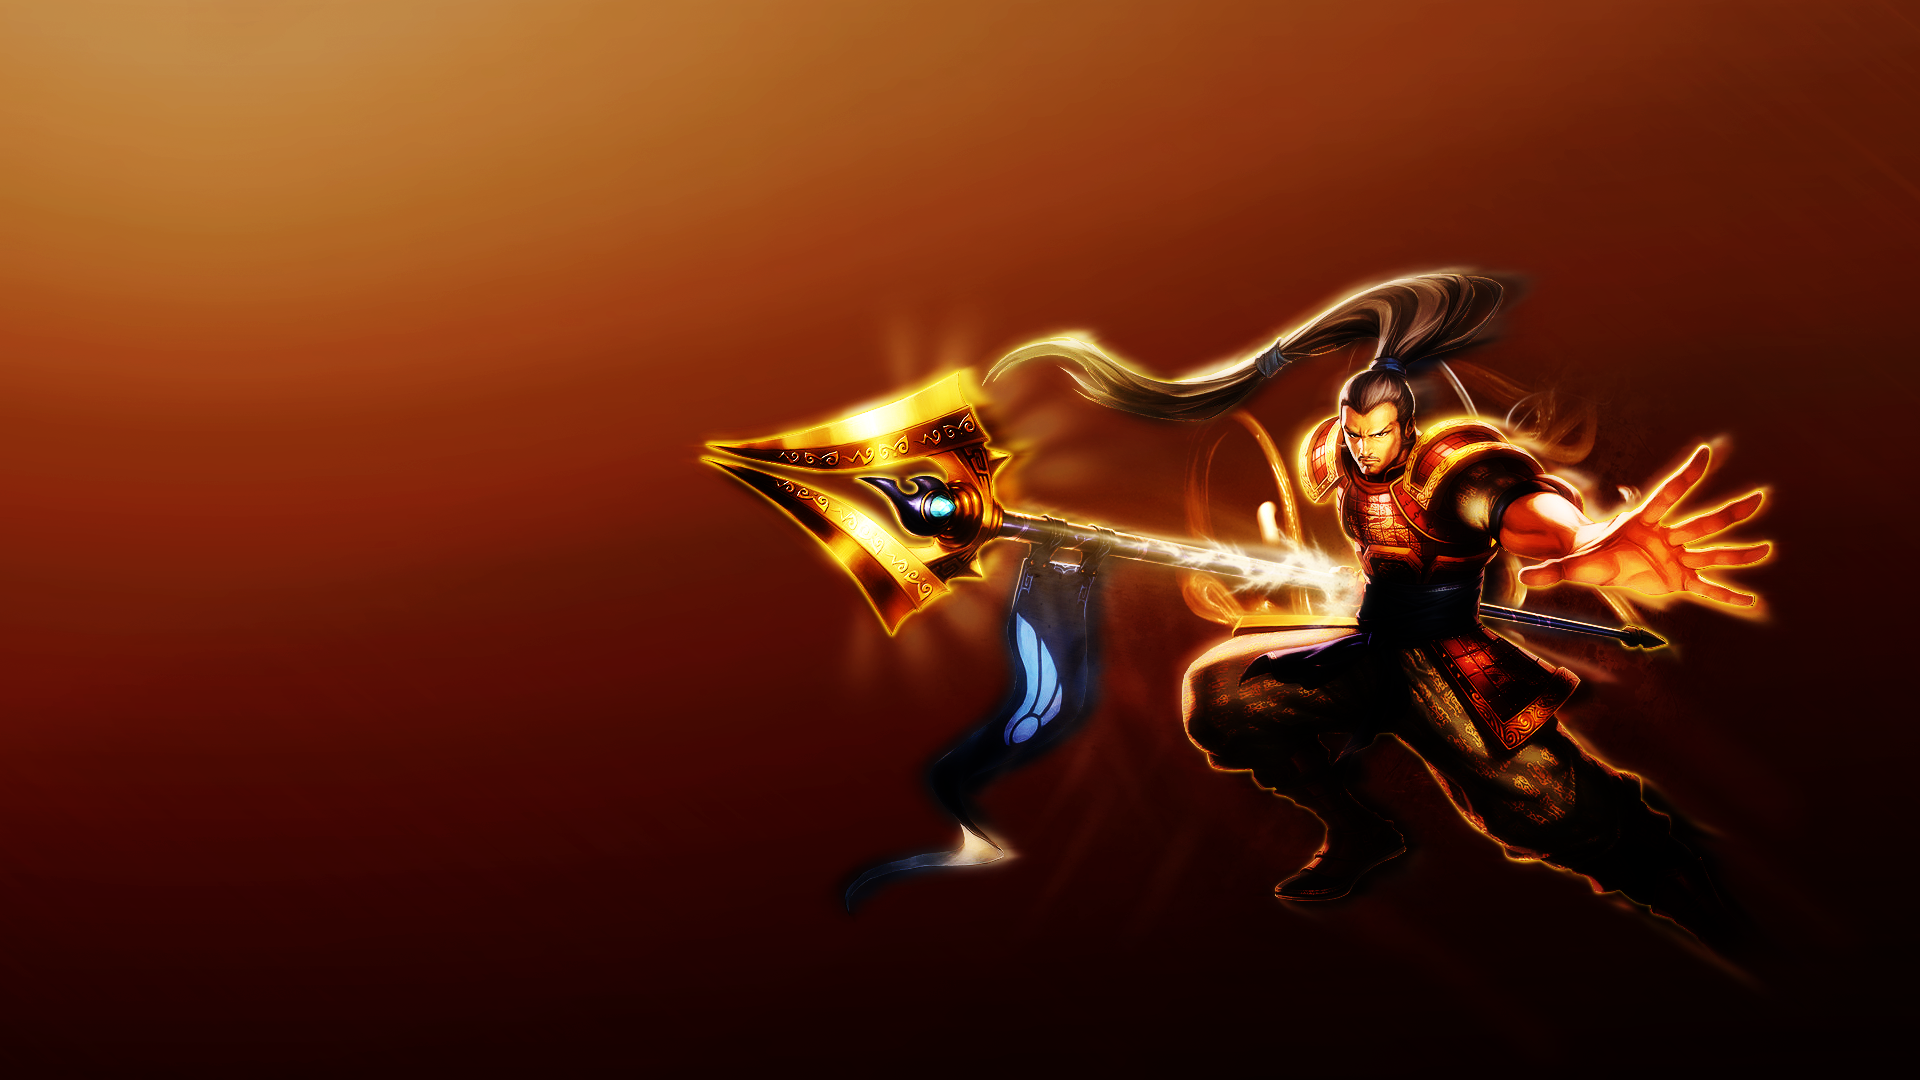 Imperial Xin Zhao wallpaper